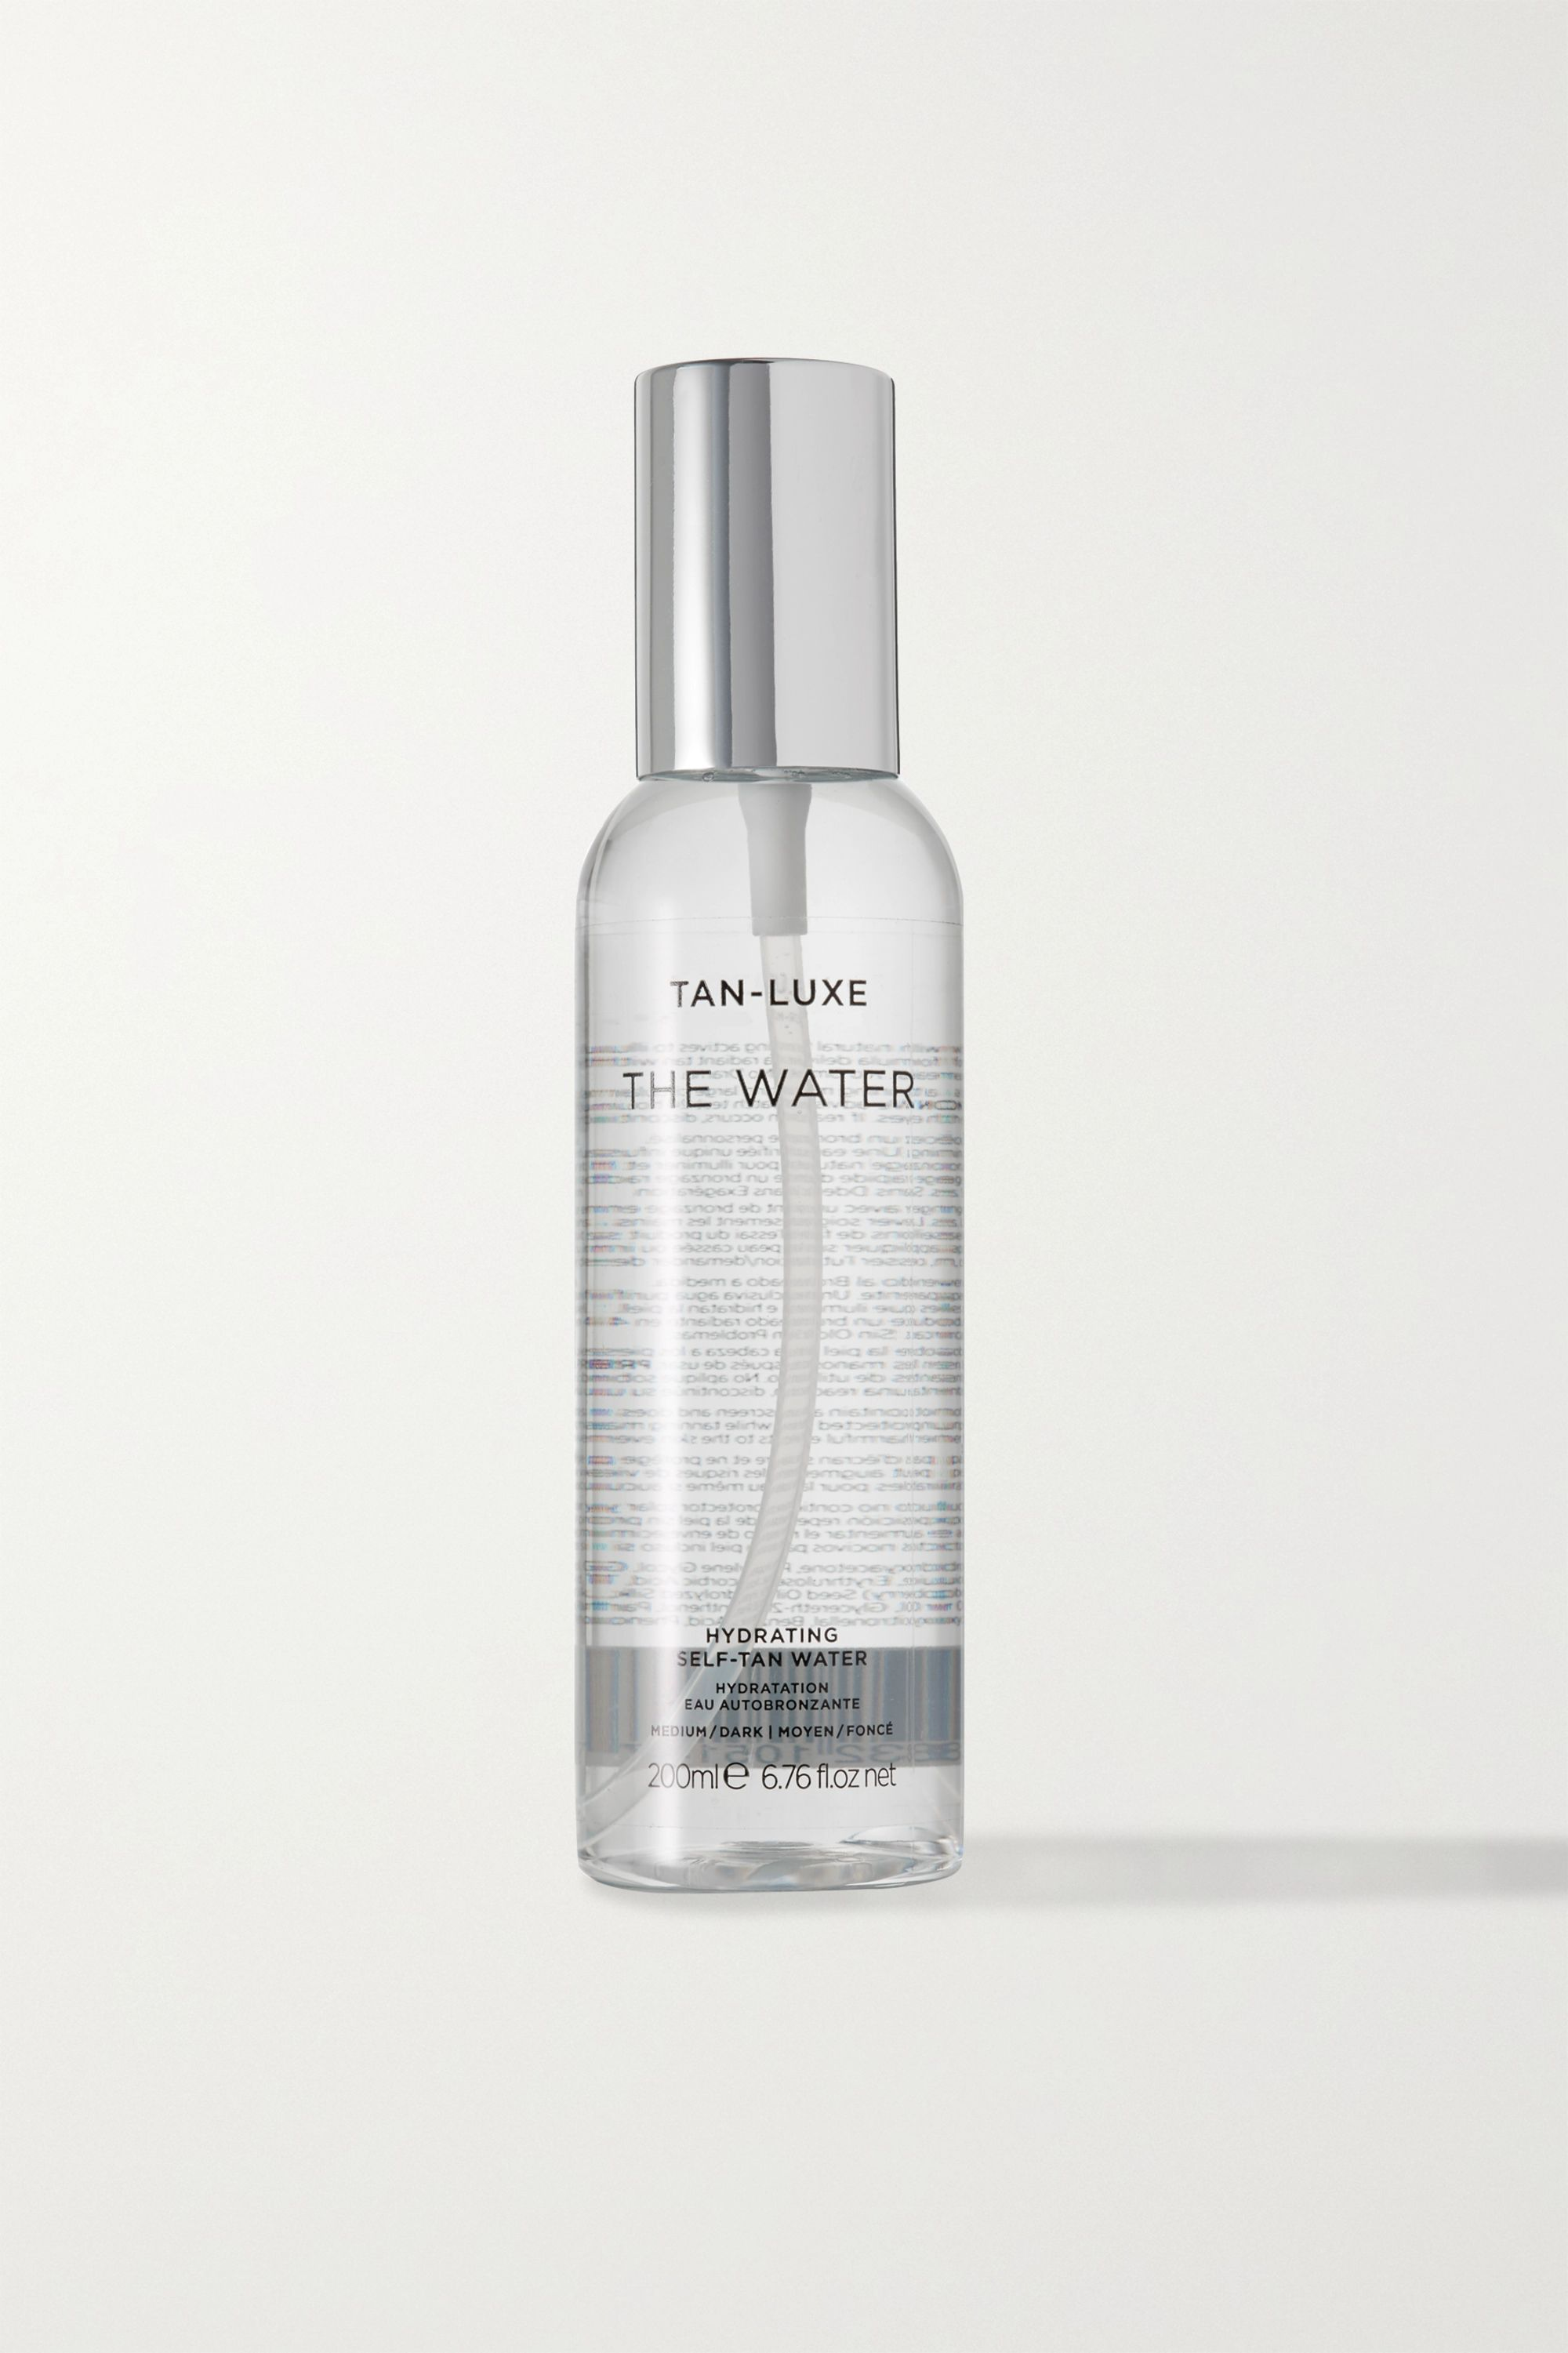 TAN-LUXE The Water Hydrating Self-Tan Water - Light/Medium, 200ml